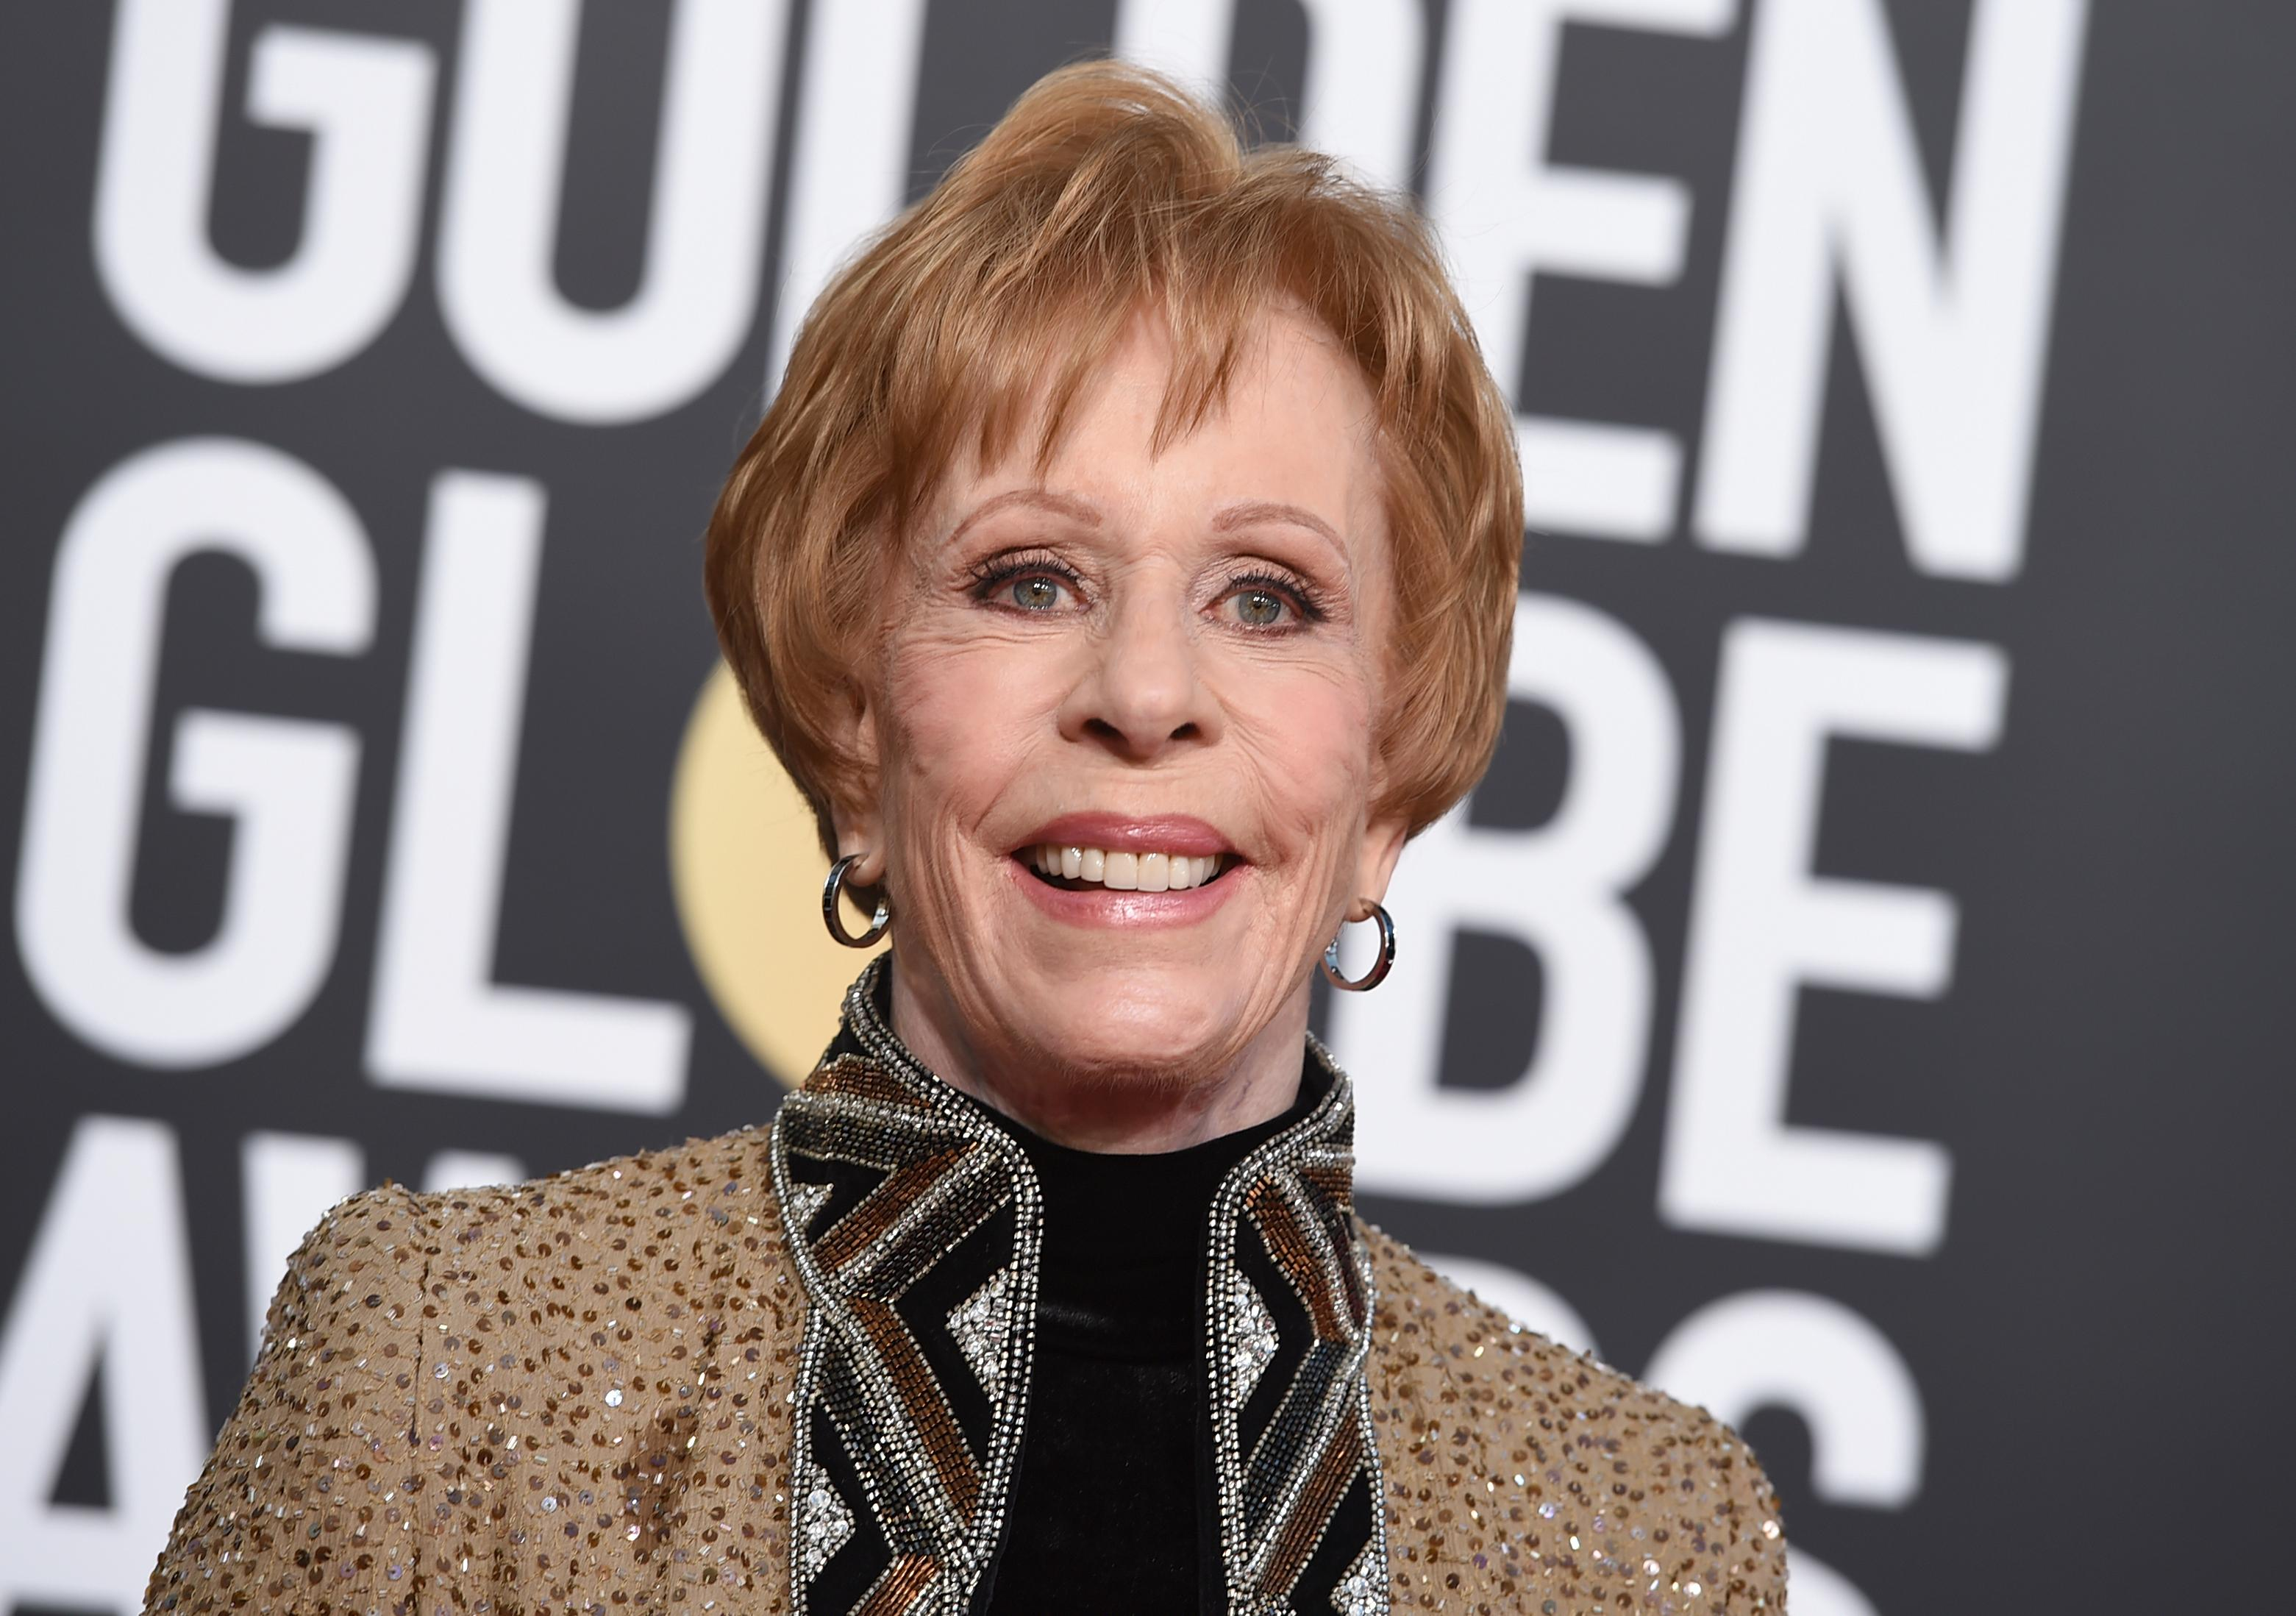 Carol Burnett arrives at the 76th annual Golden Globe Awards at the Beverly Hilton Hotel on Sunday, Jan. 6, 2019, in Beverly Hills, Calif. (Photo by Jordan Strauss/Invision/AP)